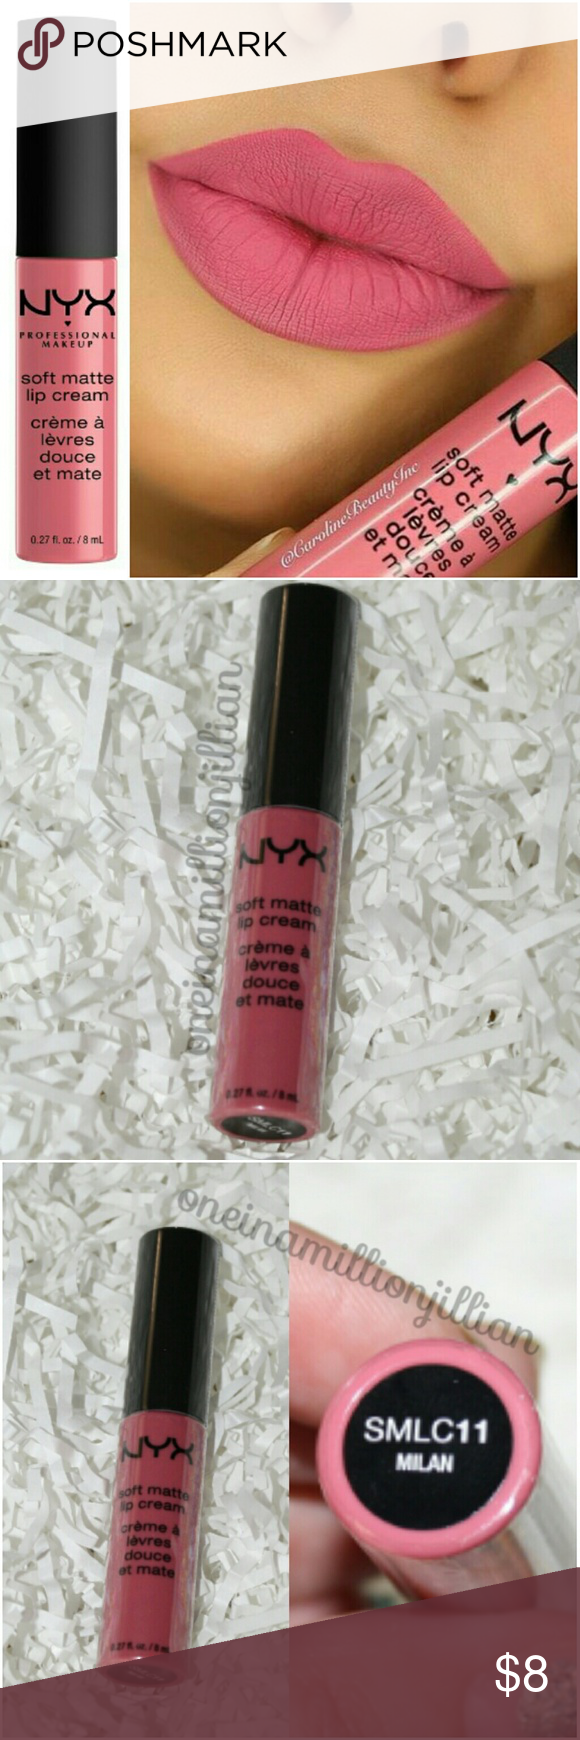 NYX Soft Matte Lip Cream - Milan Boutique | Nyx soft matte ...